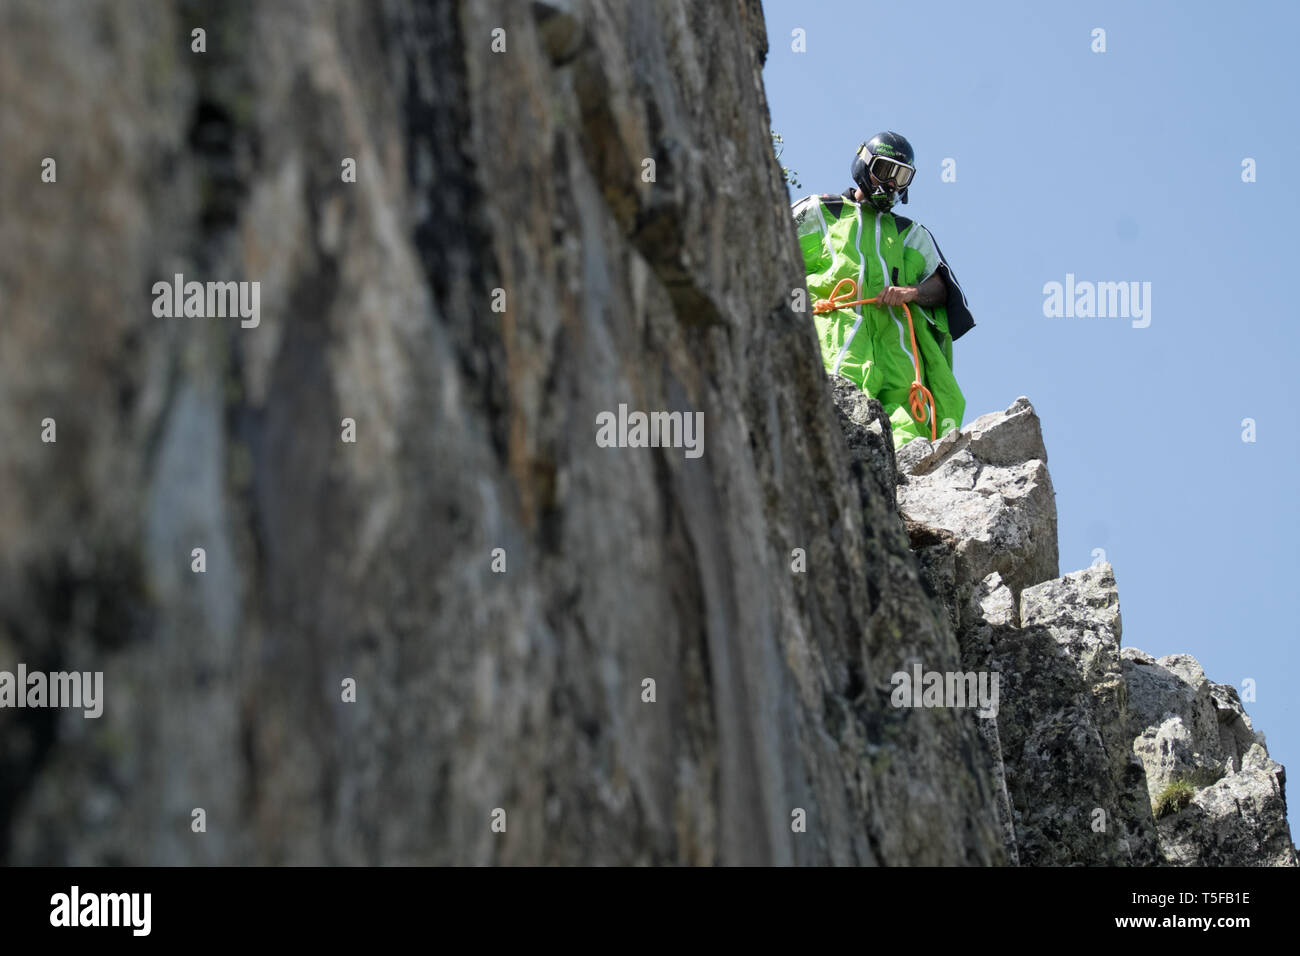 CHAMONIX, FRANCE - JULY 05: A wingsuit jumper jumping from a cliff in france, Auvergne-rhône-alpes, Chamonix, France on July 5, 2015 in Chamonix, France. (Photo by Fred Marie/Art in All of Us/Corbis via Getty Images) - Stock Image